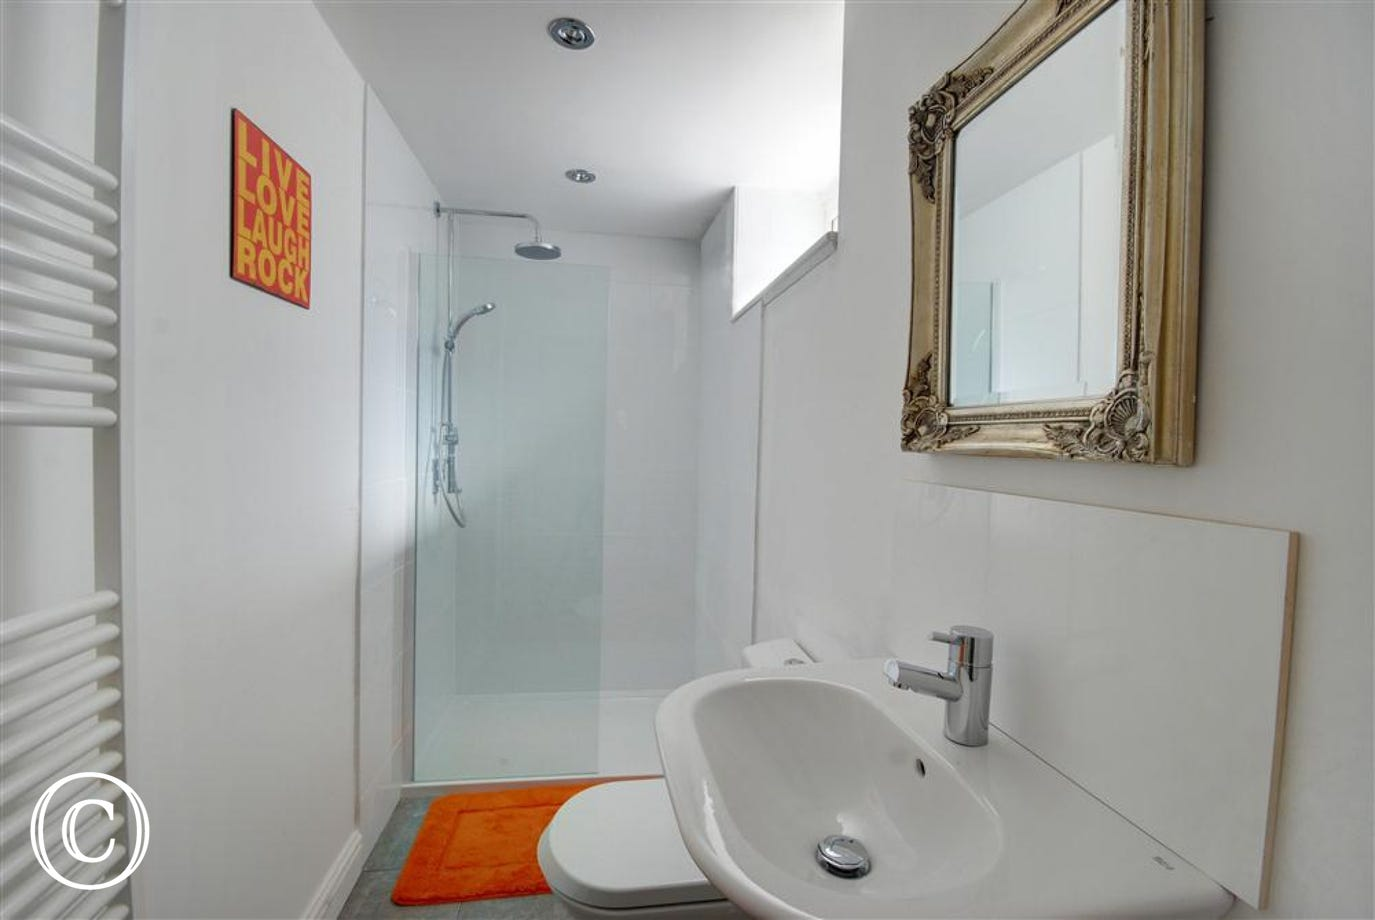 Convenient downstairs shower room has a ''wet room'' feel to it